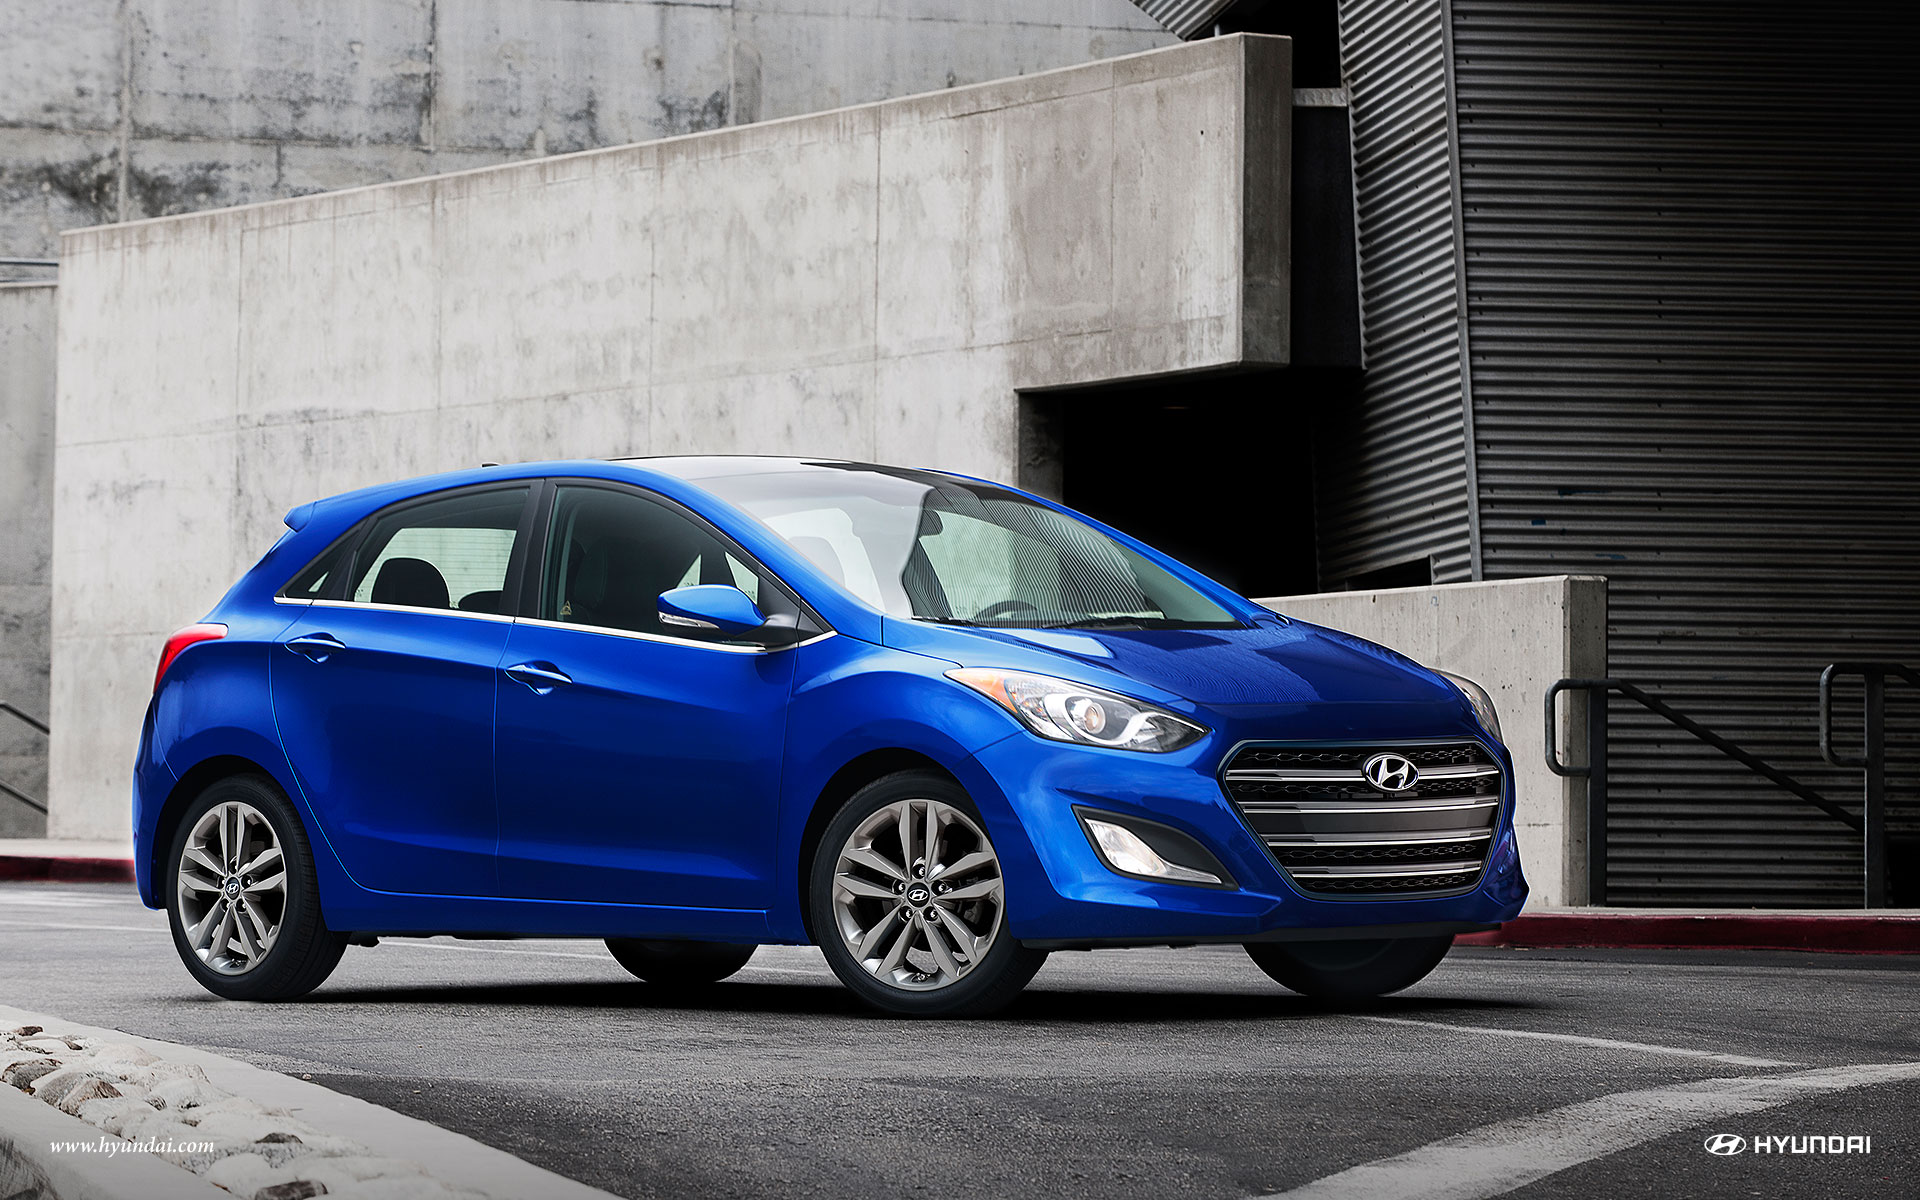 2017 Hyundai Elantra GT for sale in Capitol Heights, MD - Pohanka ...